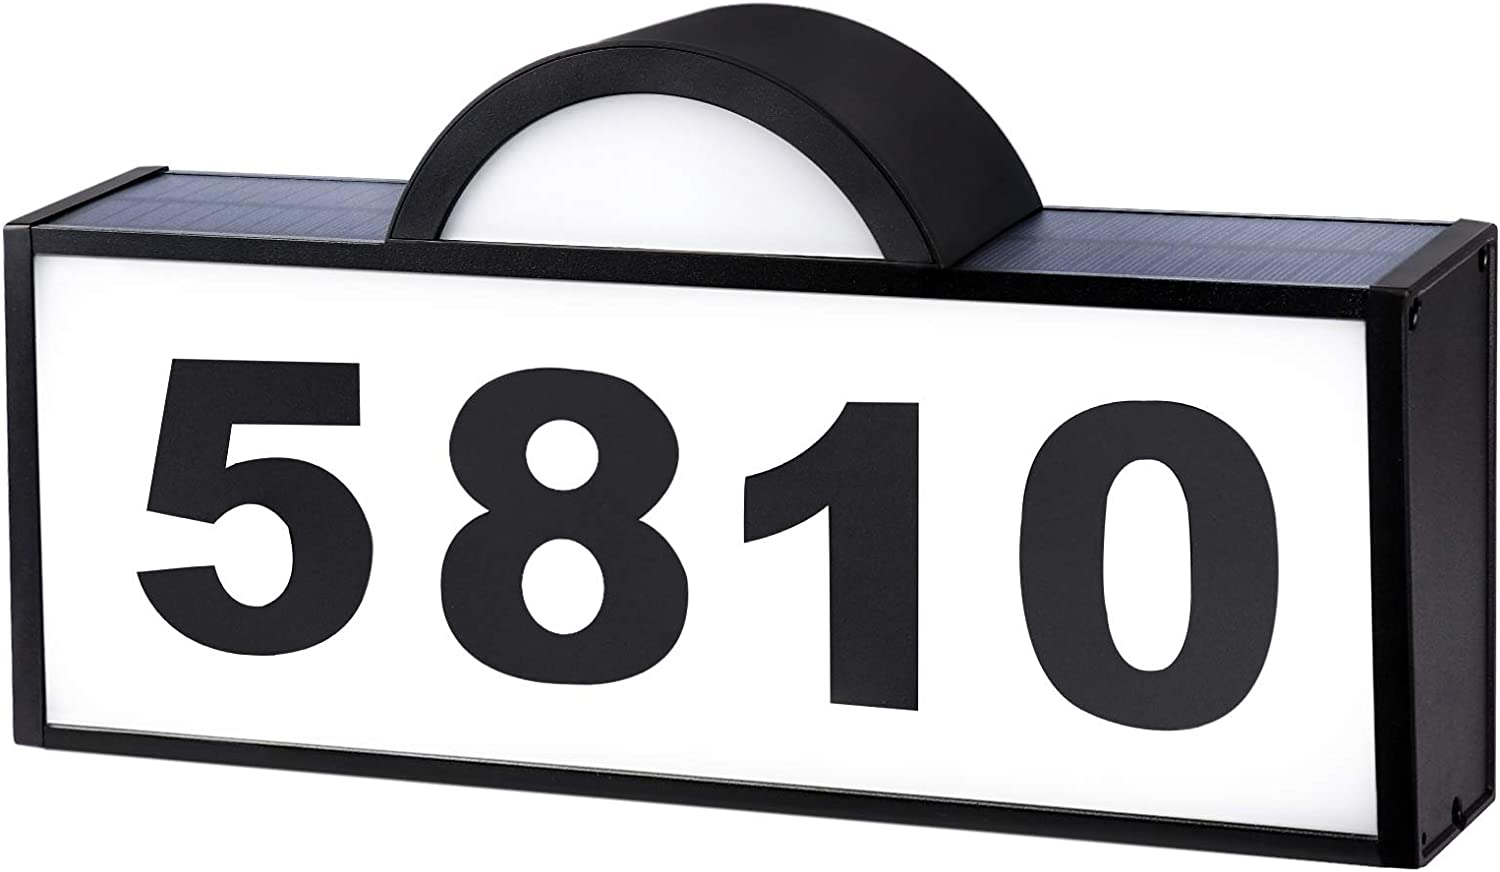 CINOTON House Numbers Solar Powered, Address Numbers Signs White/Warm LED Illuminated Outdoor IP65 Waterproof, Solar House Numbers Plaque Lighted for Outside Home Yard Garden Street Mail Box Aluminum